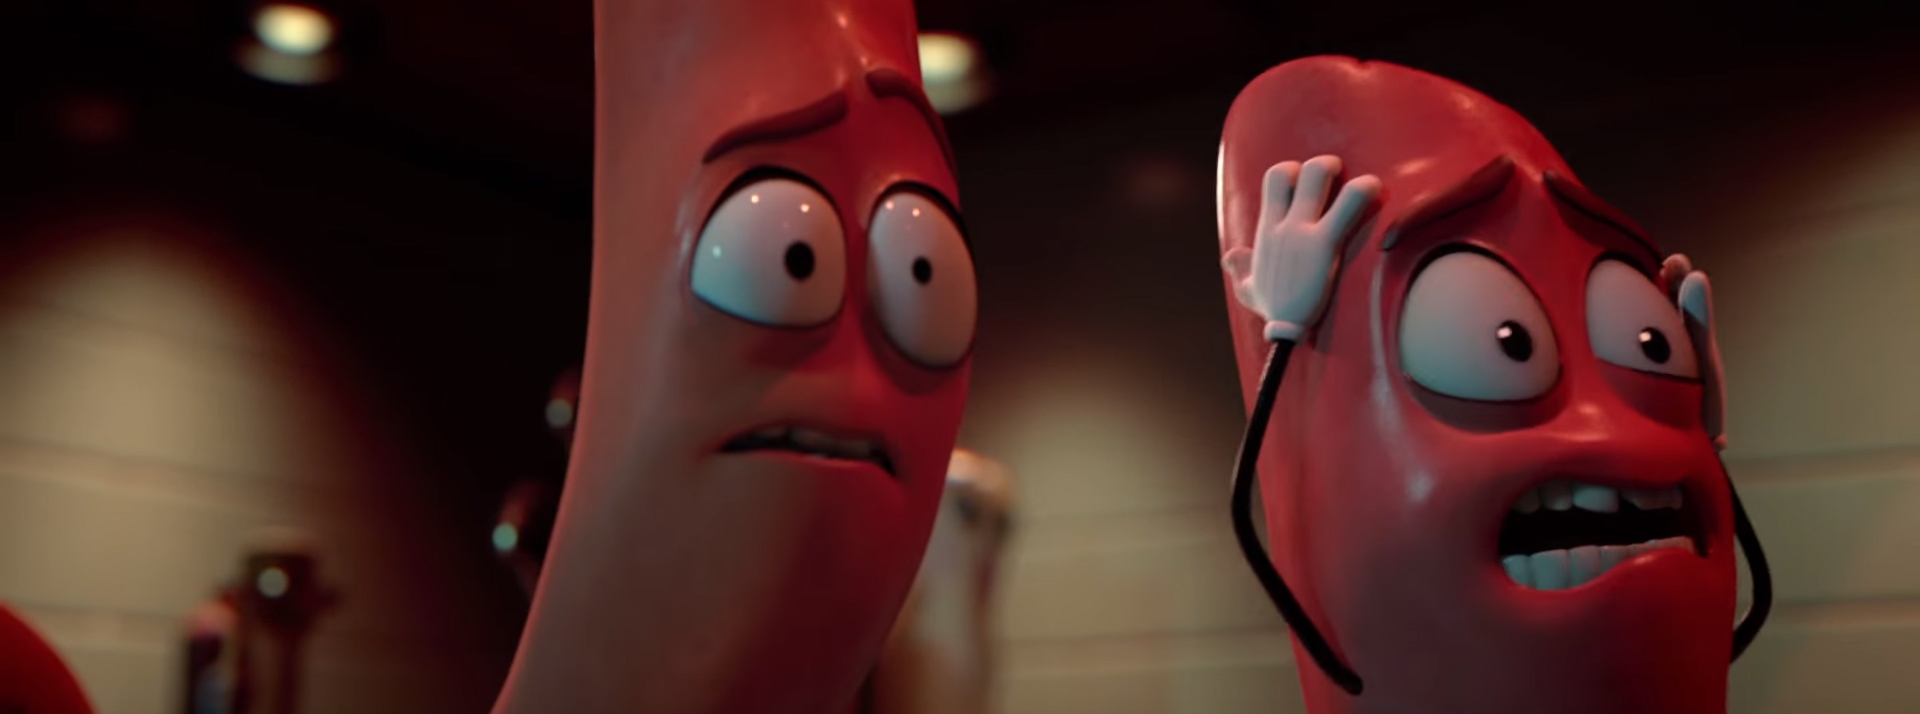 Sausage Party. Image Credit: Sony.